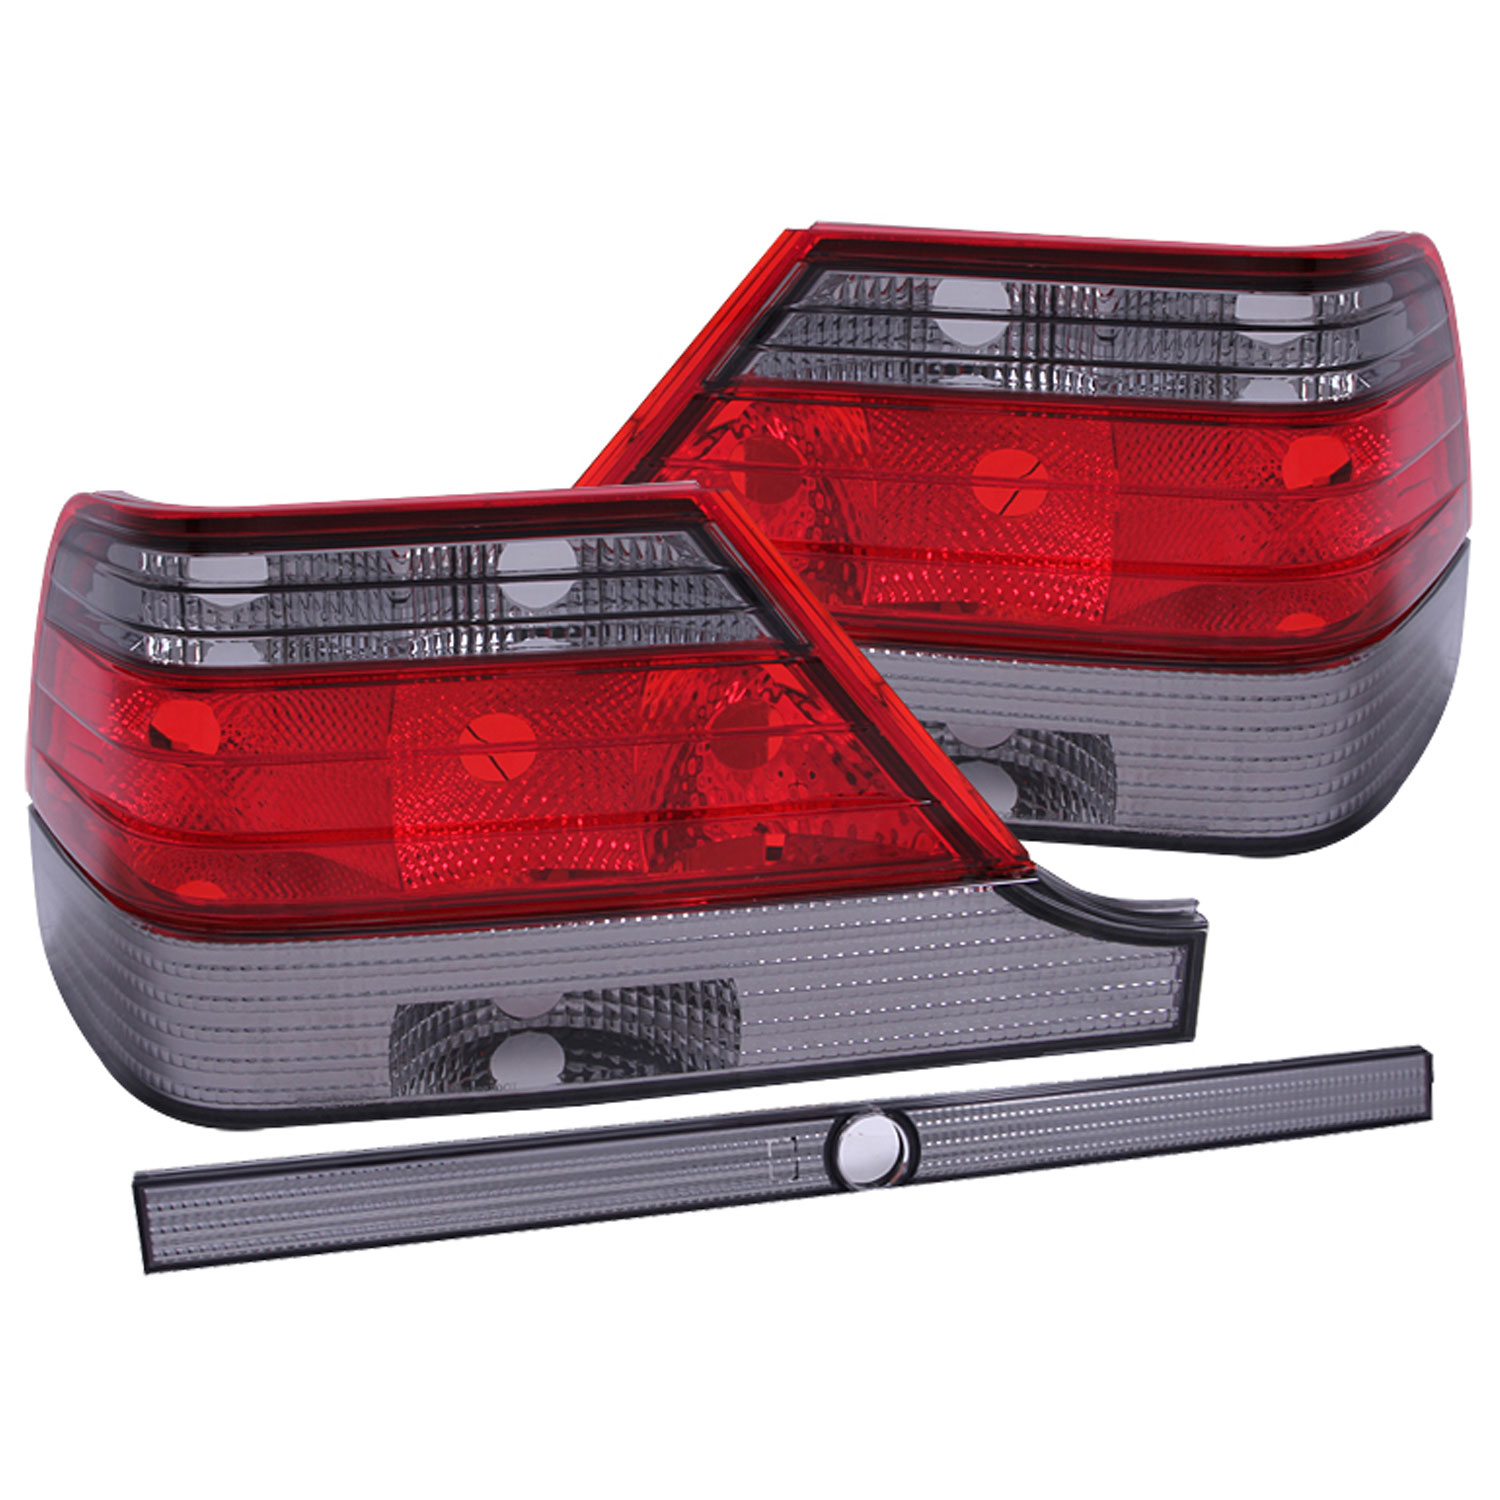 Anzo 221154 | ANZO USA Mercedes Benz S Class W140 Taillights Red/Smoke;  1995 1999